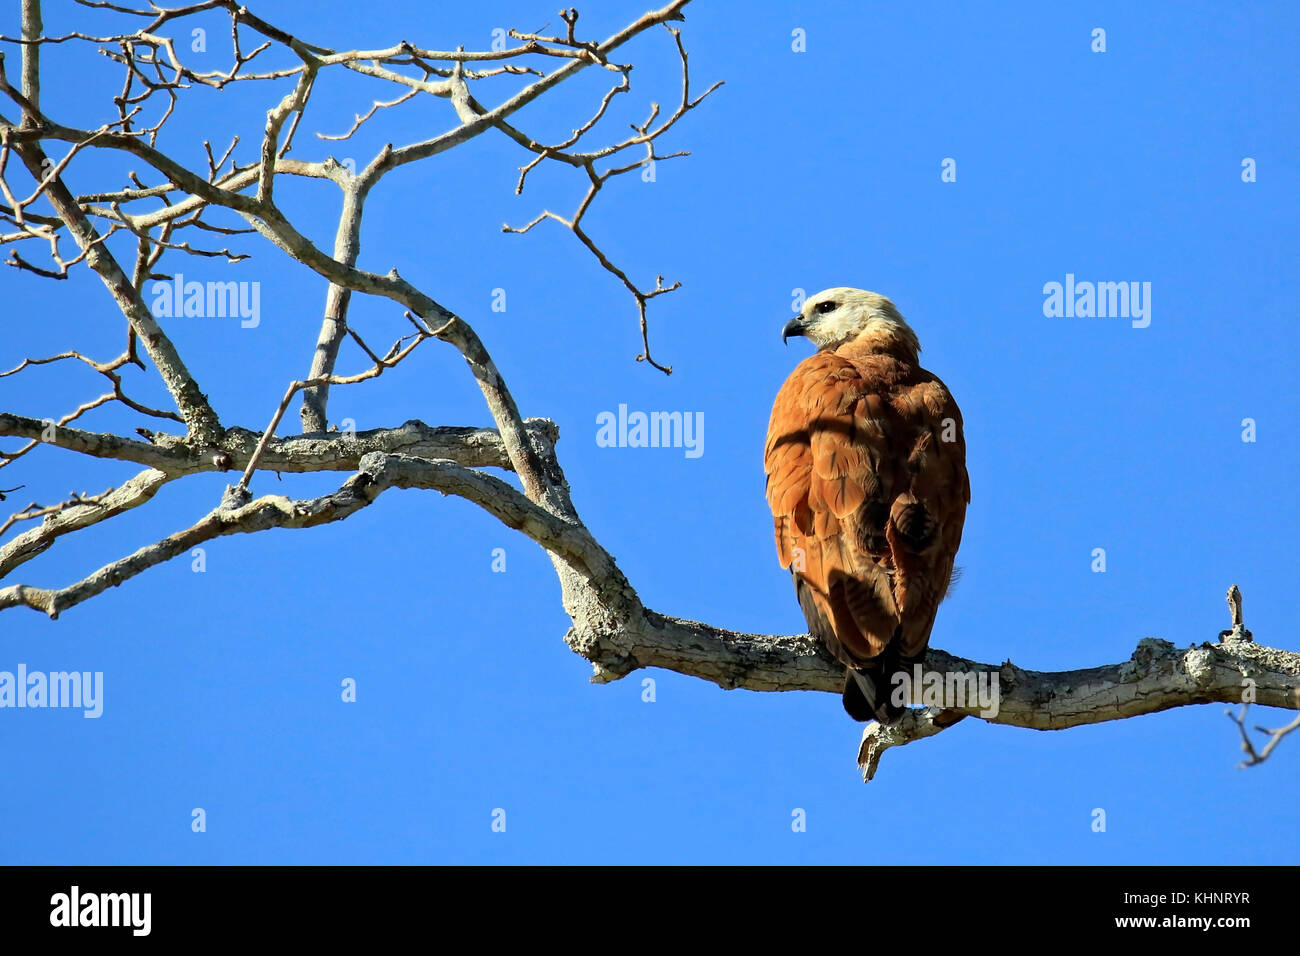 Black-collared Hawk in Profile, on a Branch. Rio Claro, Pantanal, Brazil - Stock Image